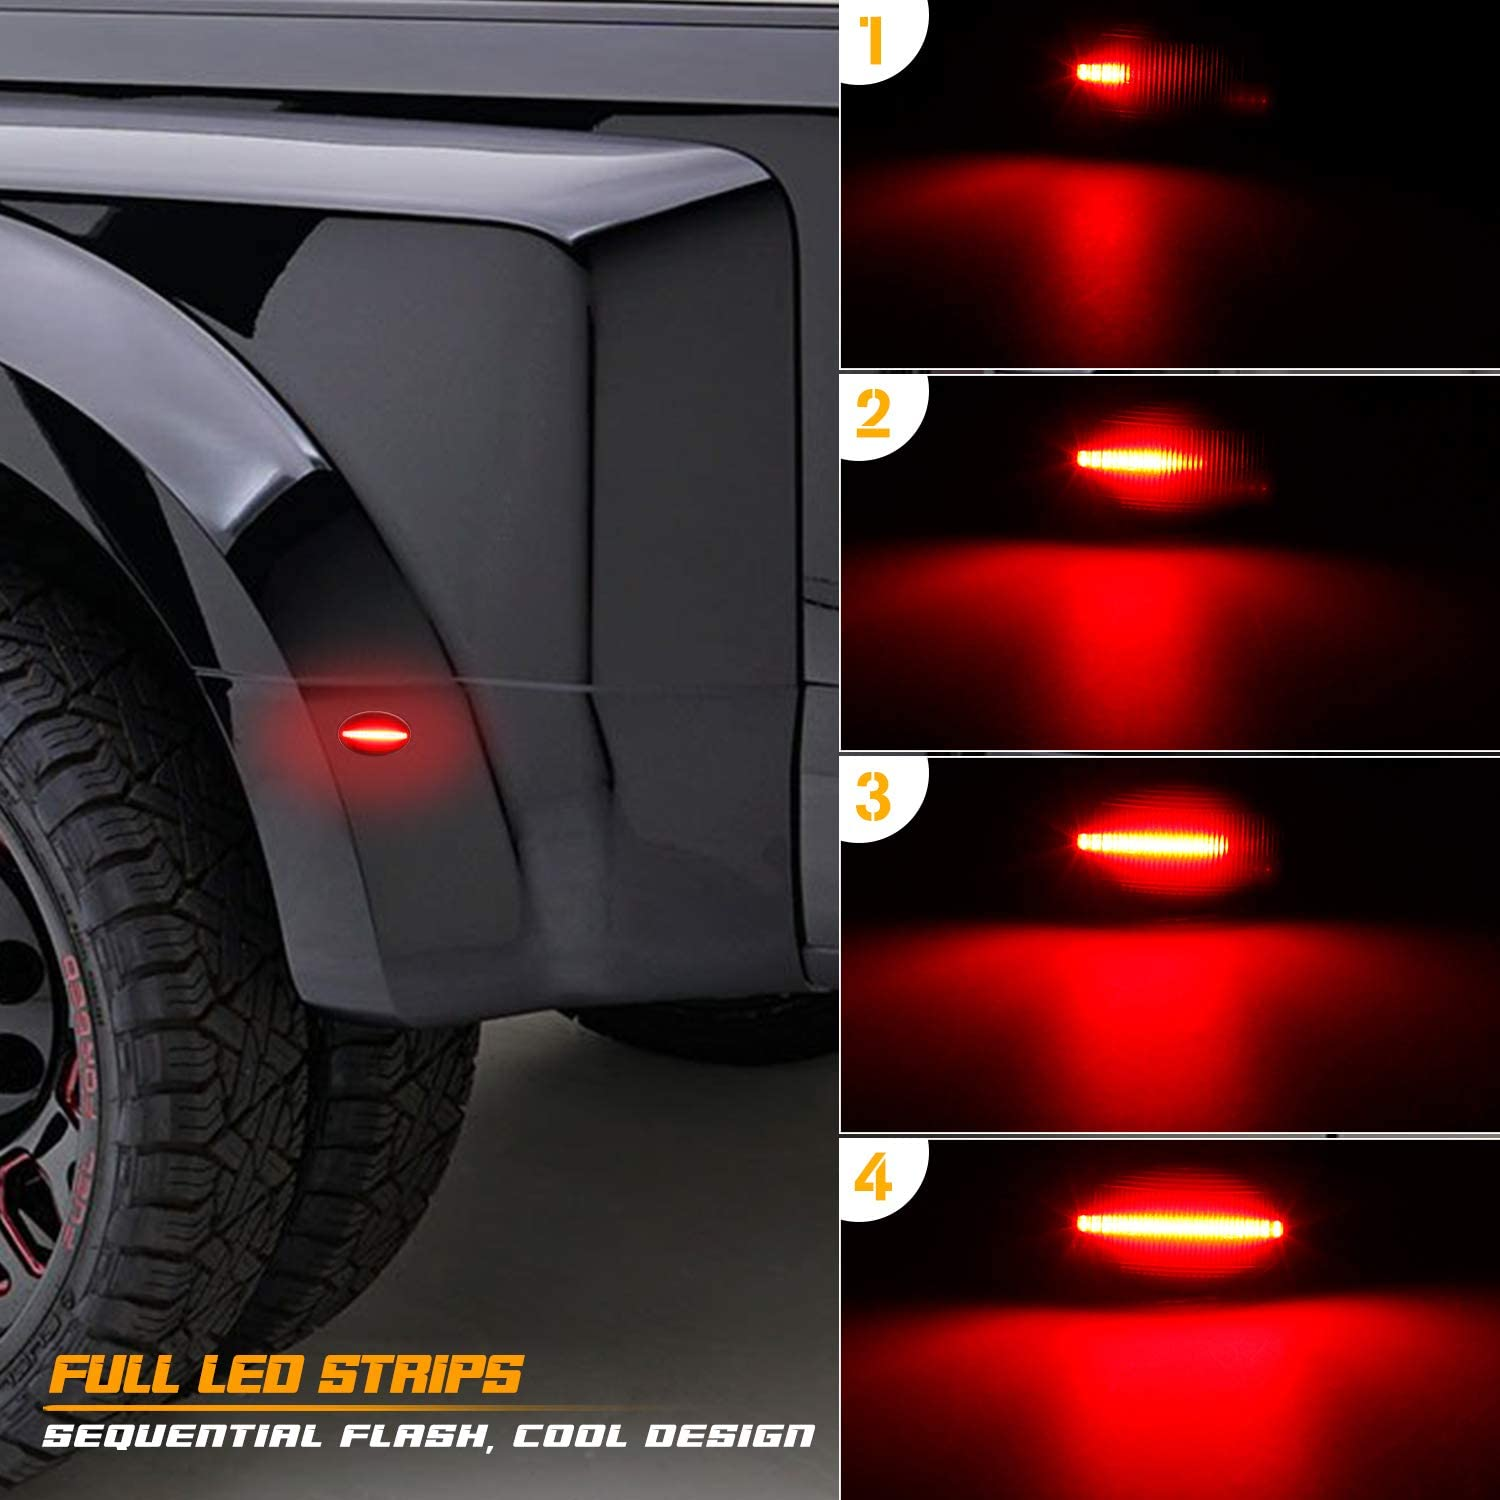 Pack of 4 RUXIFEY Sequential Dynamic LED Dually Bed Side Marker Lights Fender Sidemarkers Compatible with 1999-2010 Ford Super Duty F350 F450 F550 Smoked